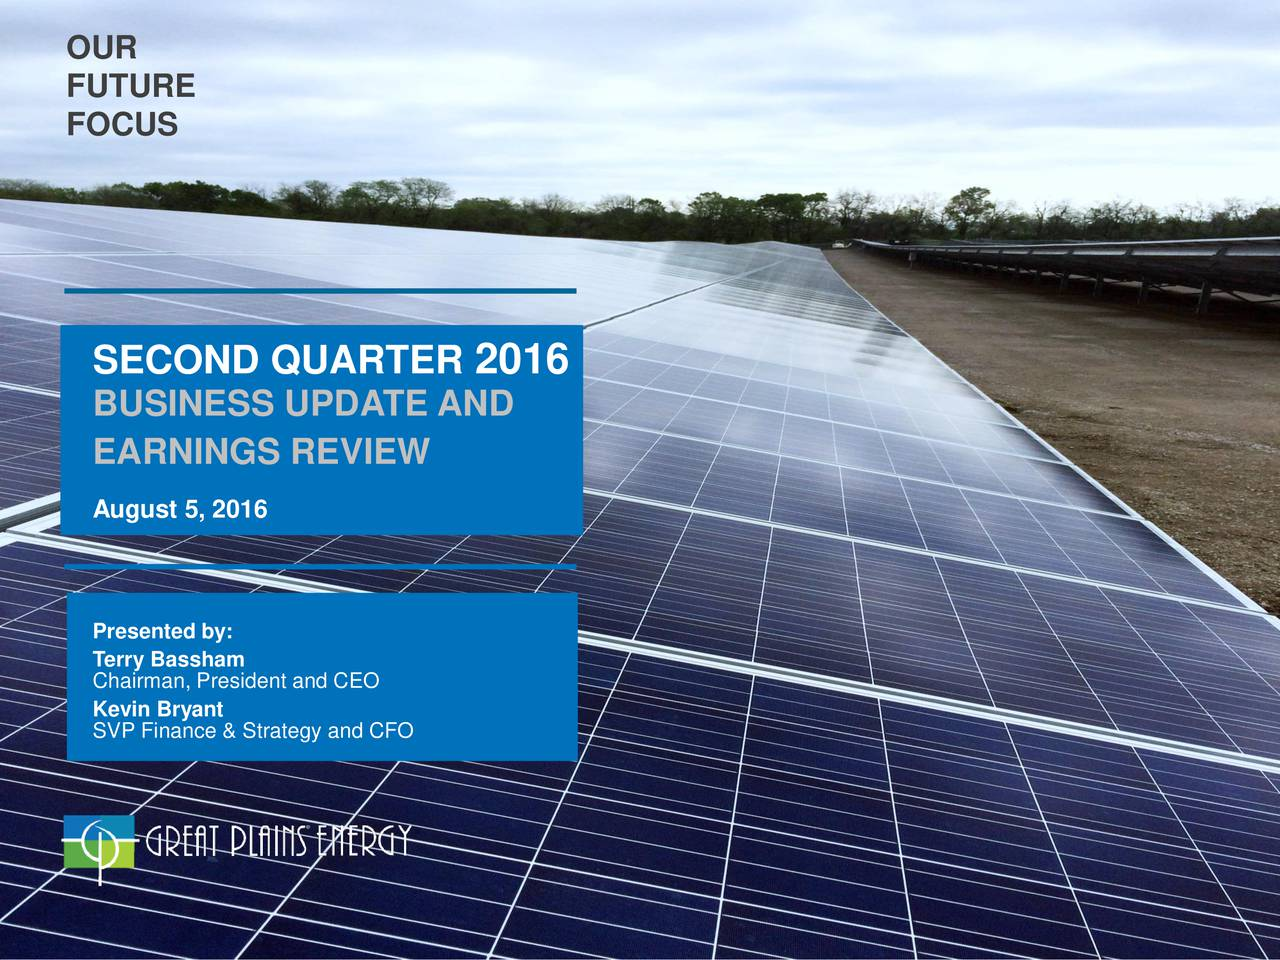 FUTURE FOCUS SECOND QUARTER 2016 BUSINESS UPDATE AND EARNINGS REVIEW August 5, 2016 Presented by: Terry Bassham Chairman, President and CEO SVP Finance & Strategy and CFO